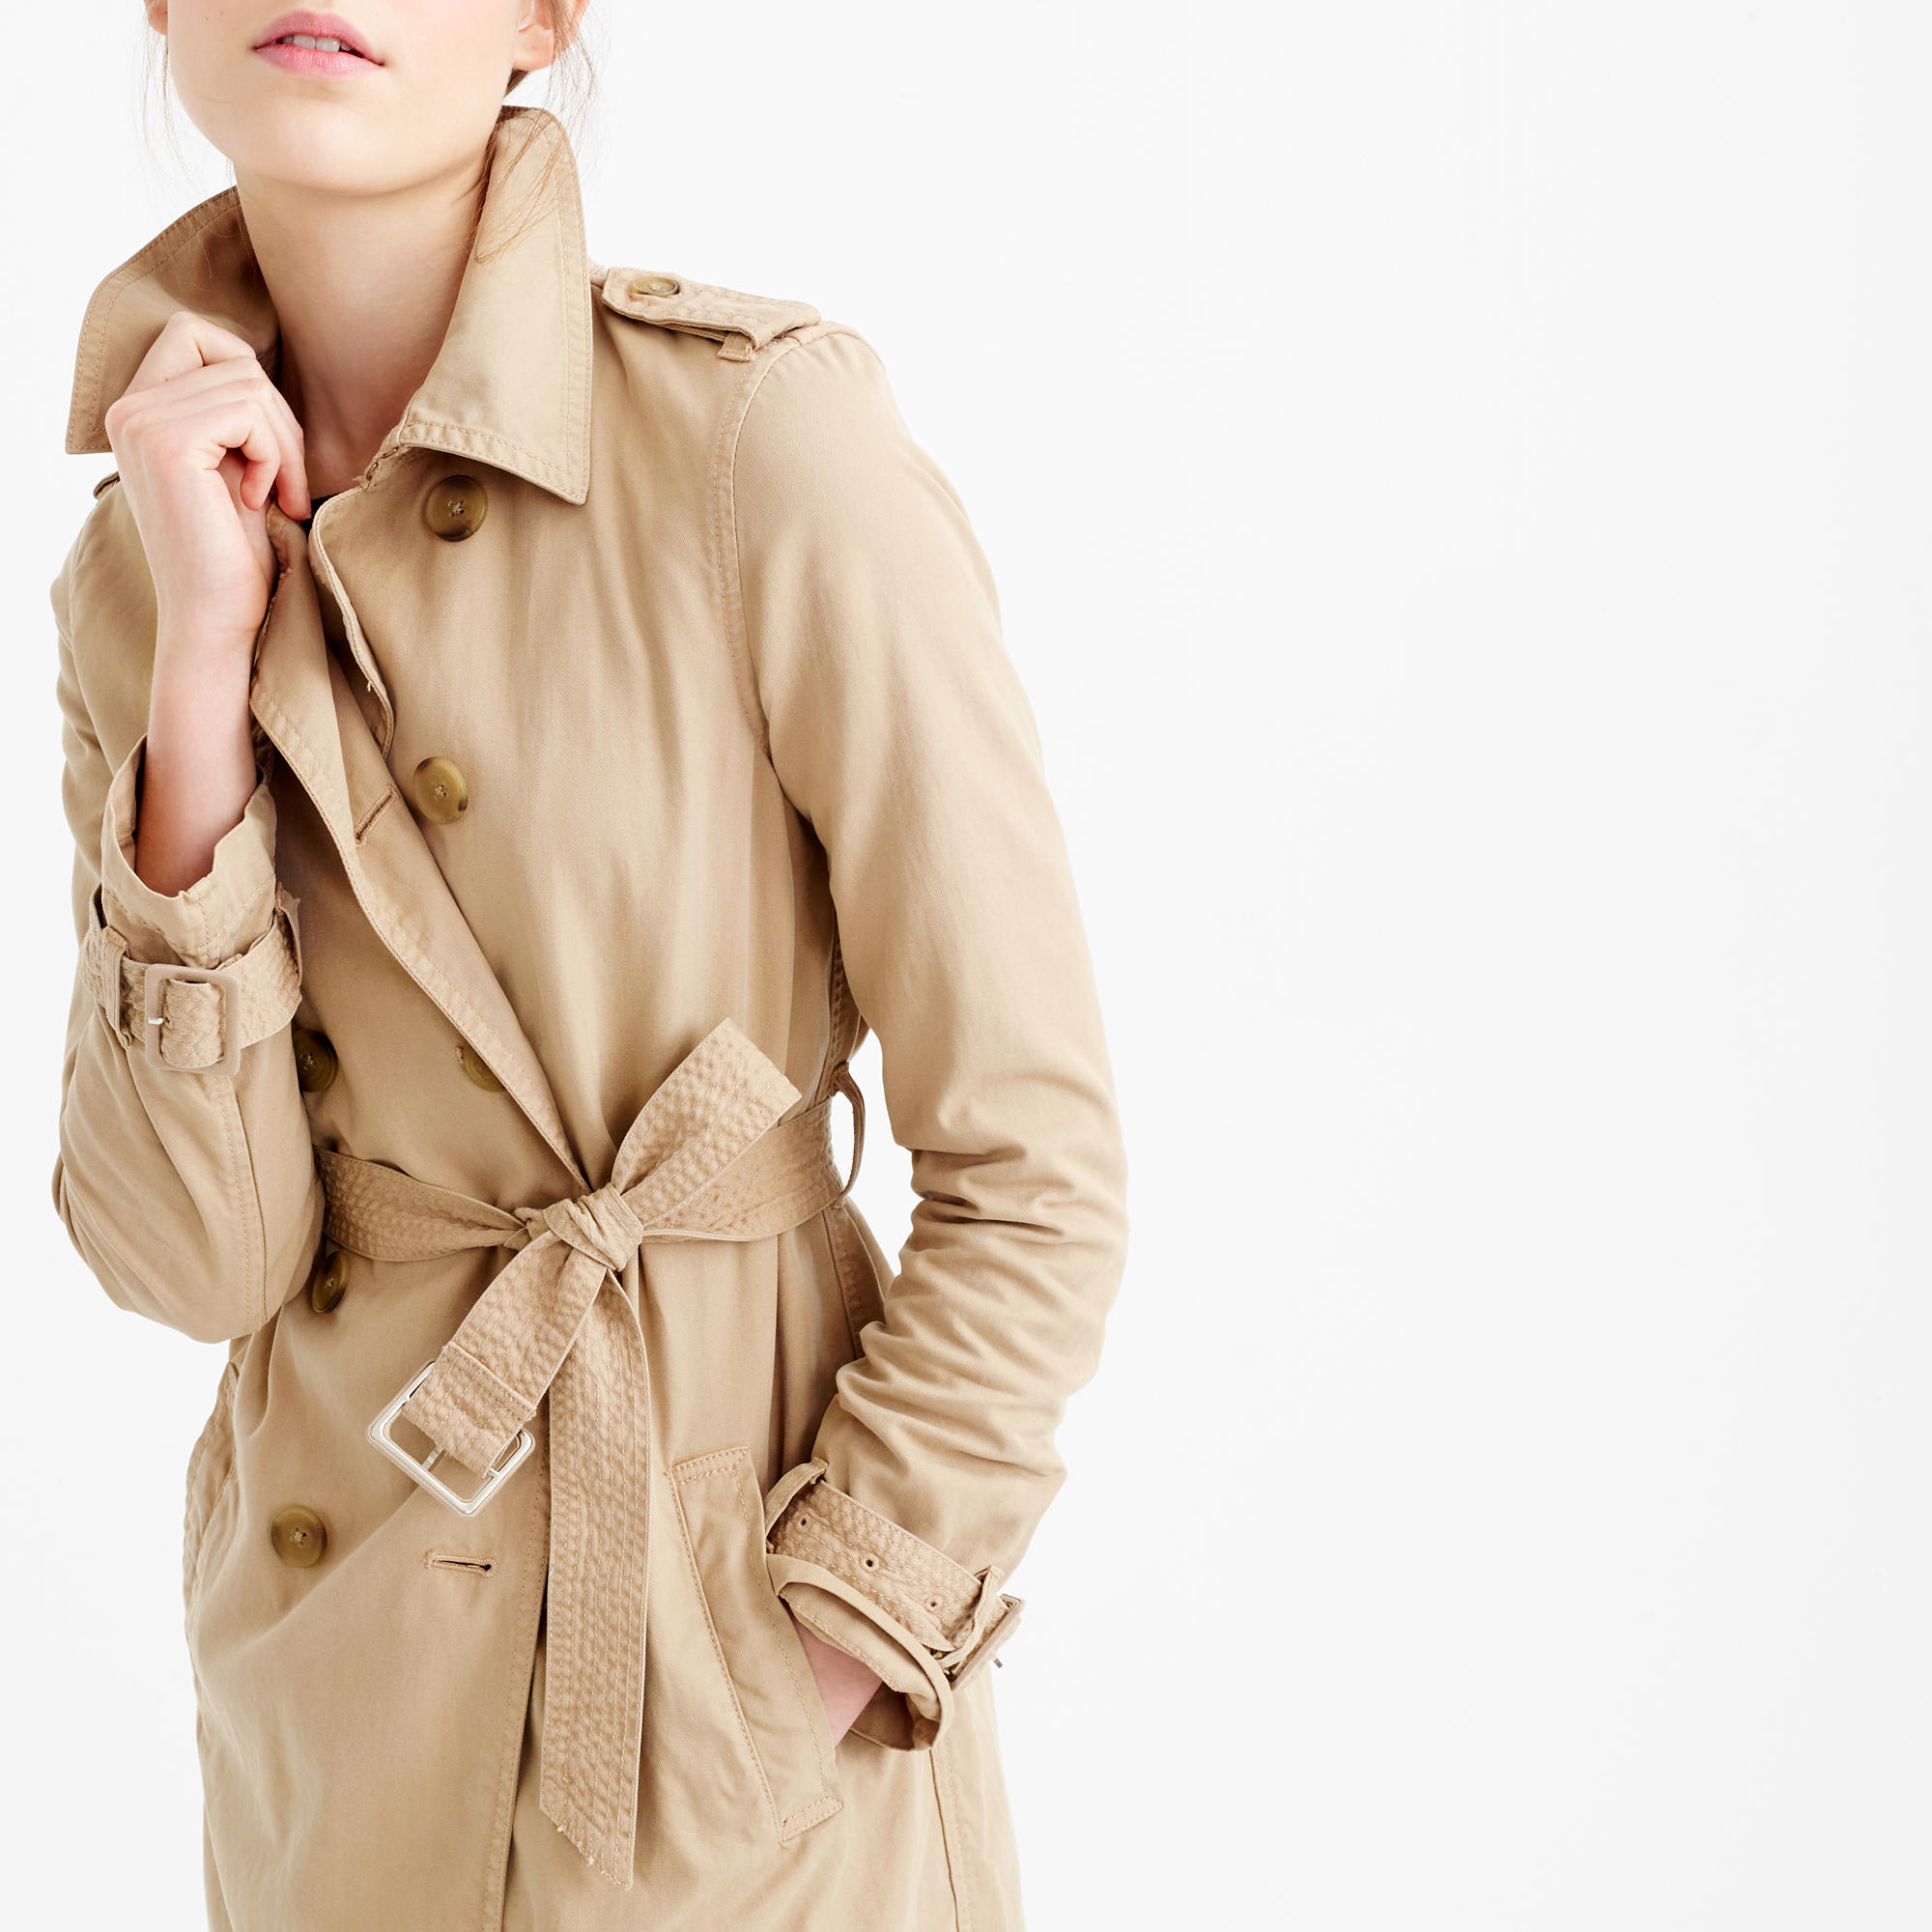 J. CREW WASHED COTTON TRENCH COAT $168